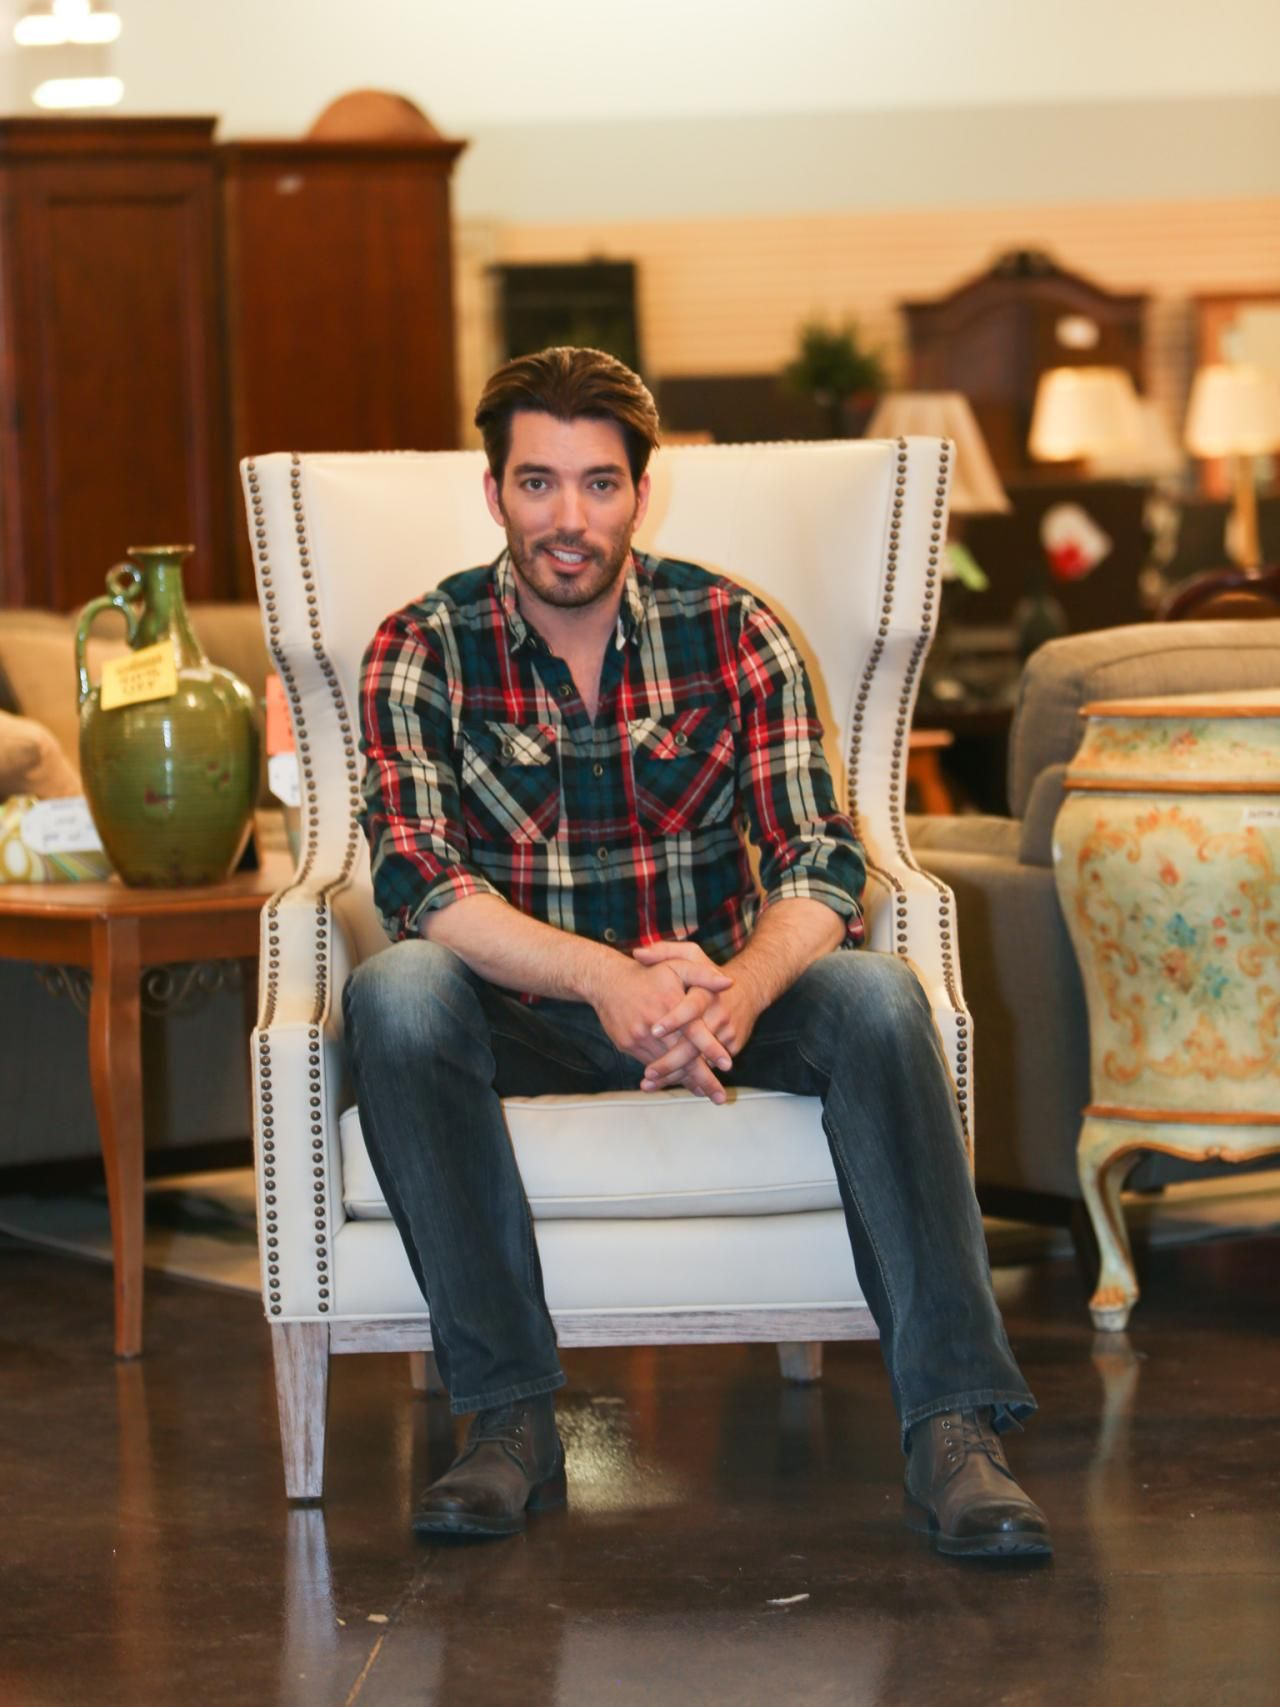 jonathan scott co host of hgtv 39 s property brothers at home takes a seat while shopping at. Black Bedroom Furniture Sets. Home Design Ideas